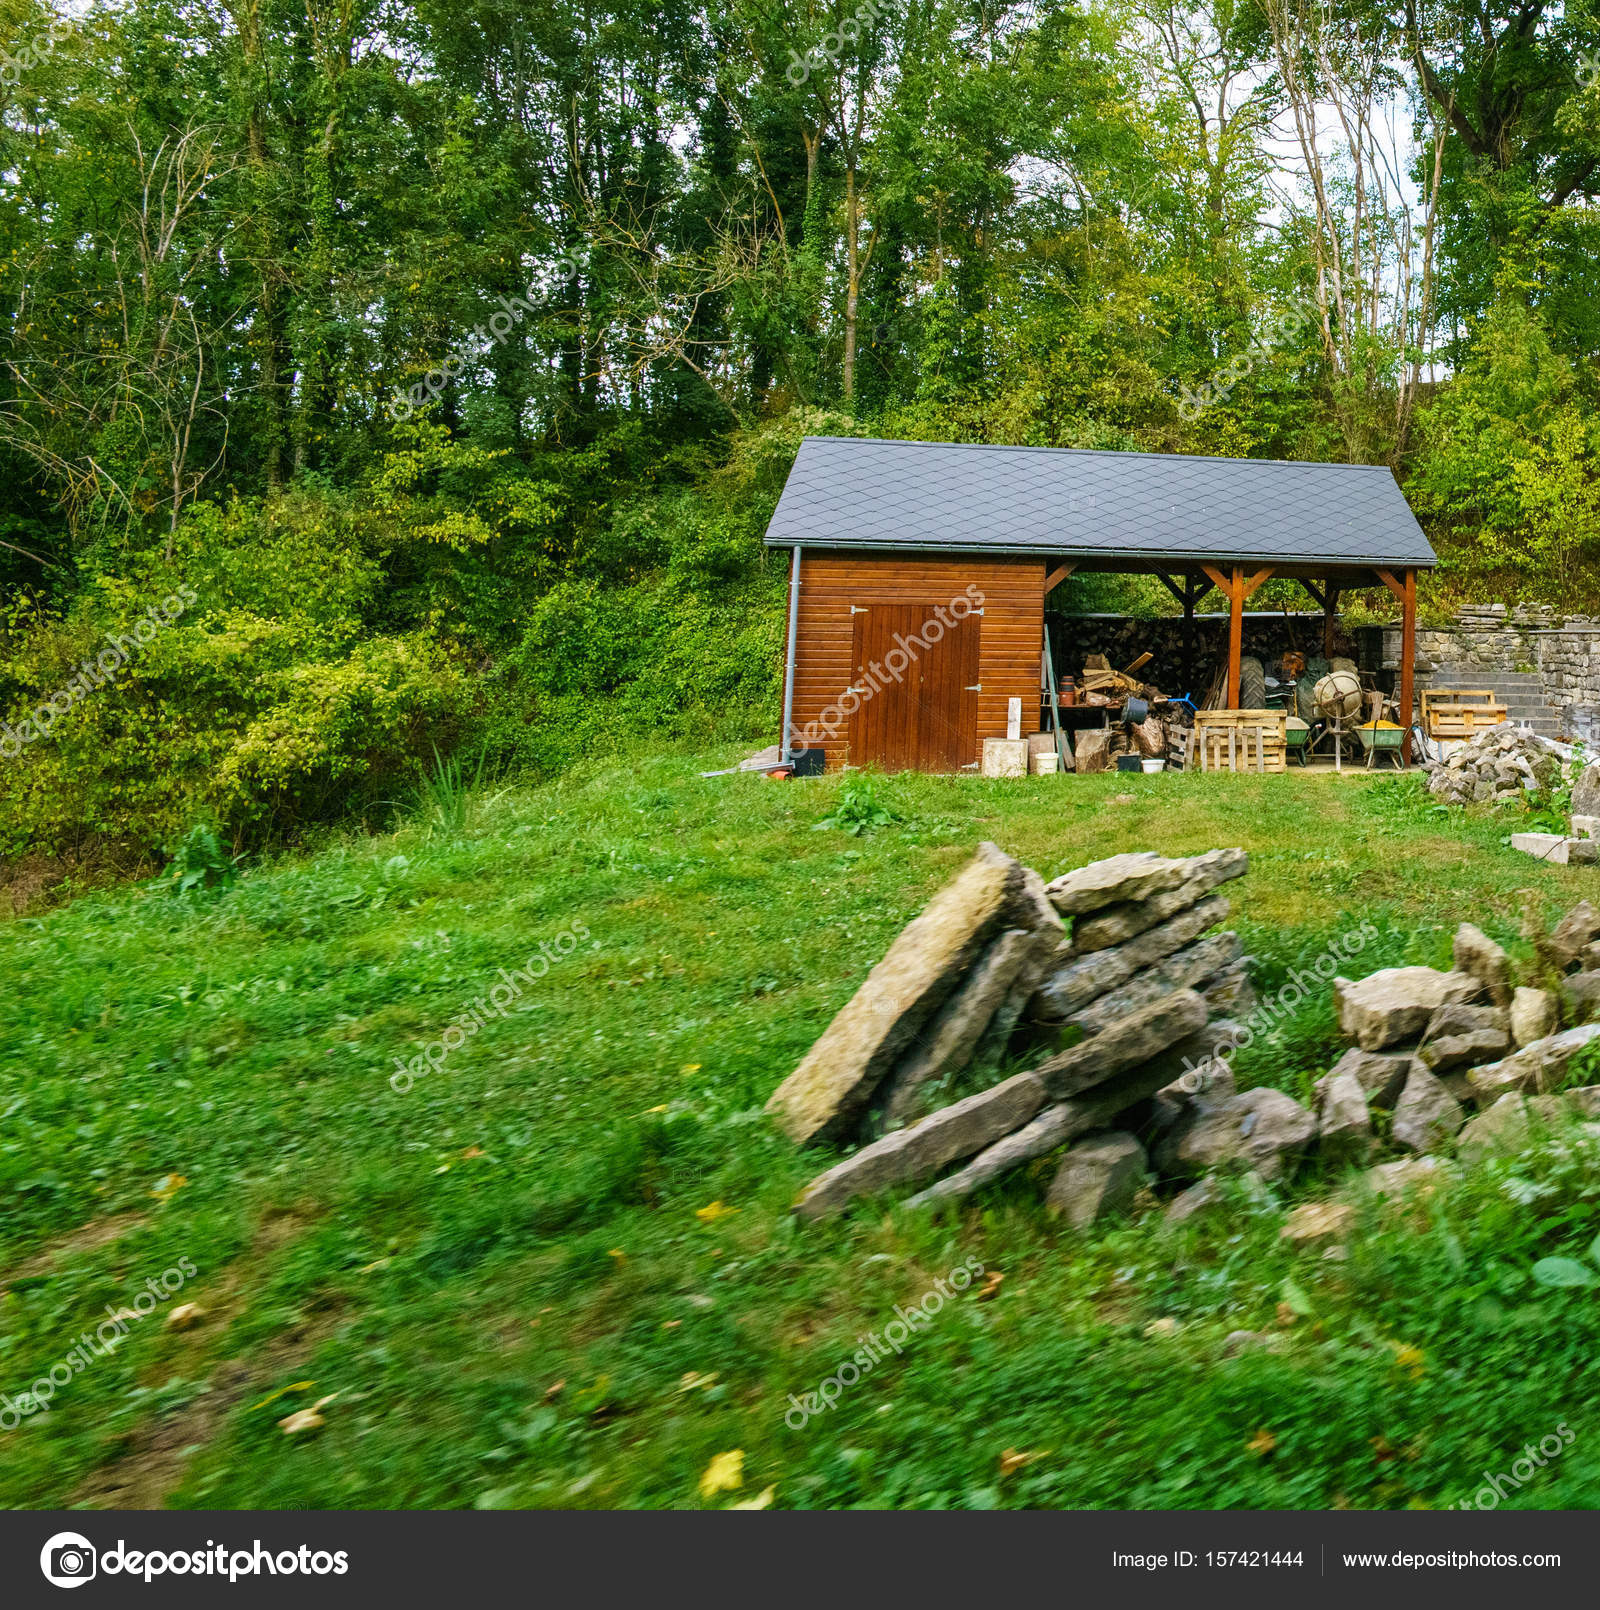 Merveilleux Small Wooden Hut With Trees Behind U2014 Stock Photo